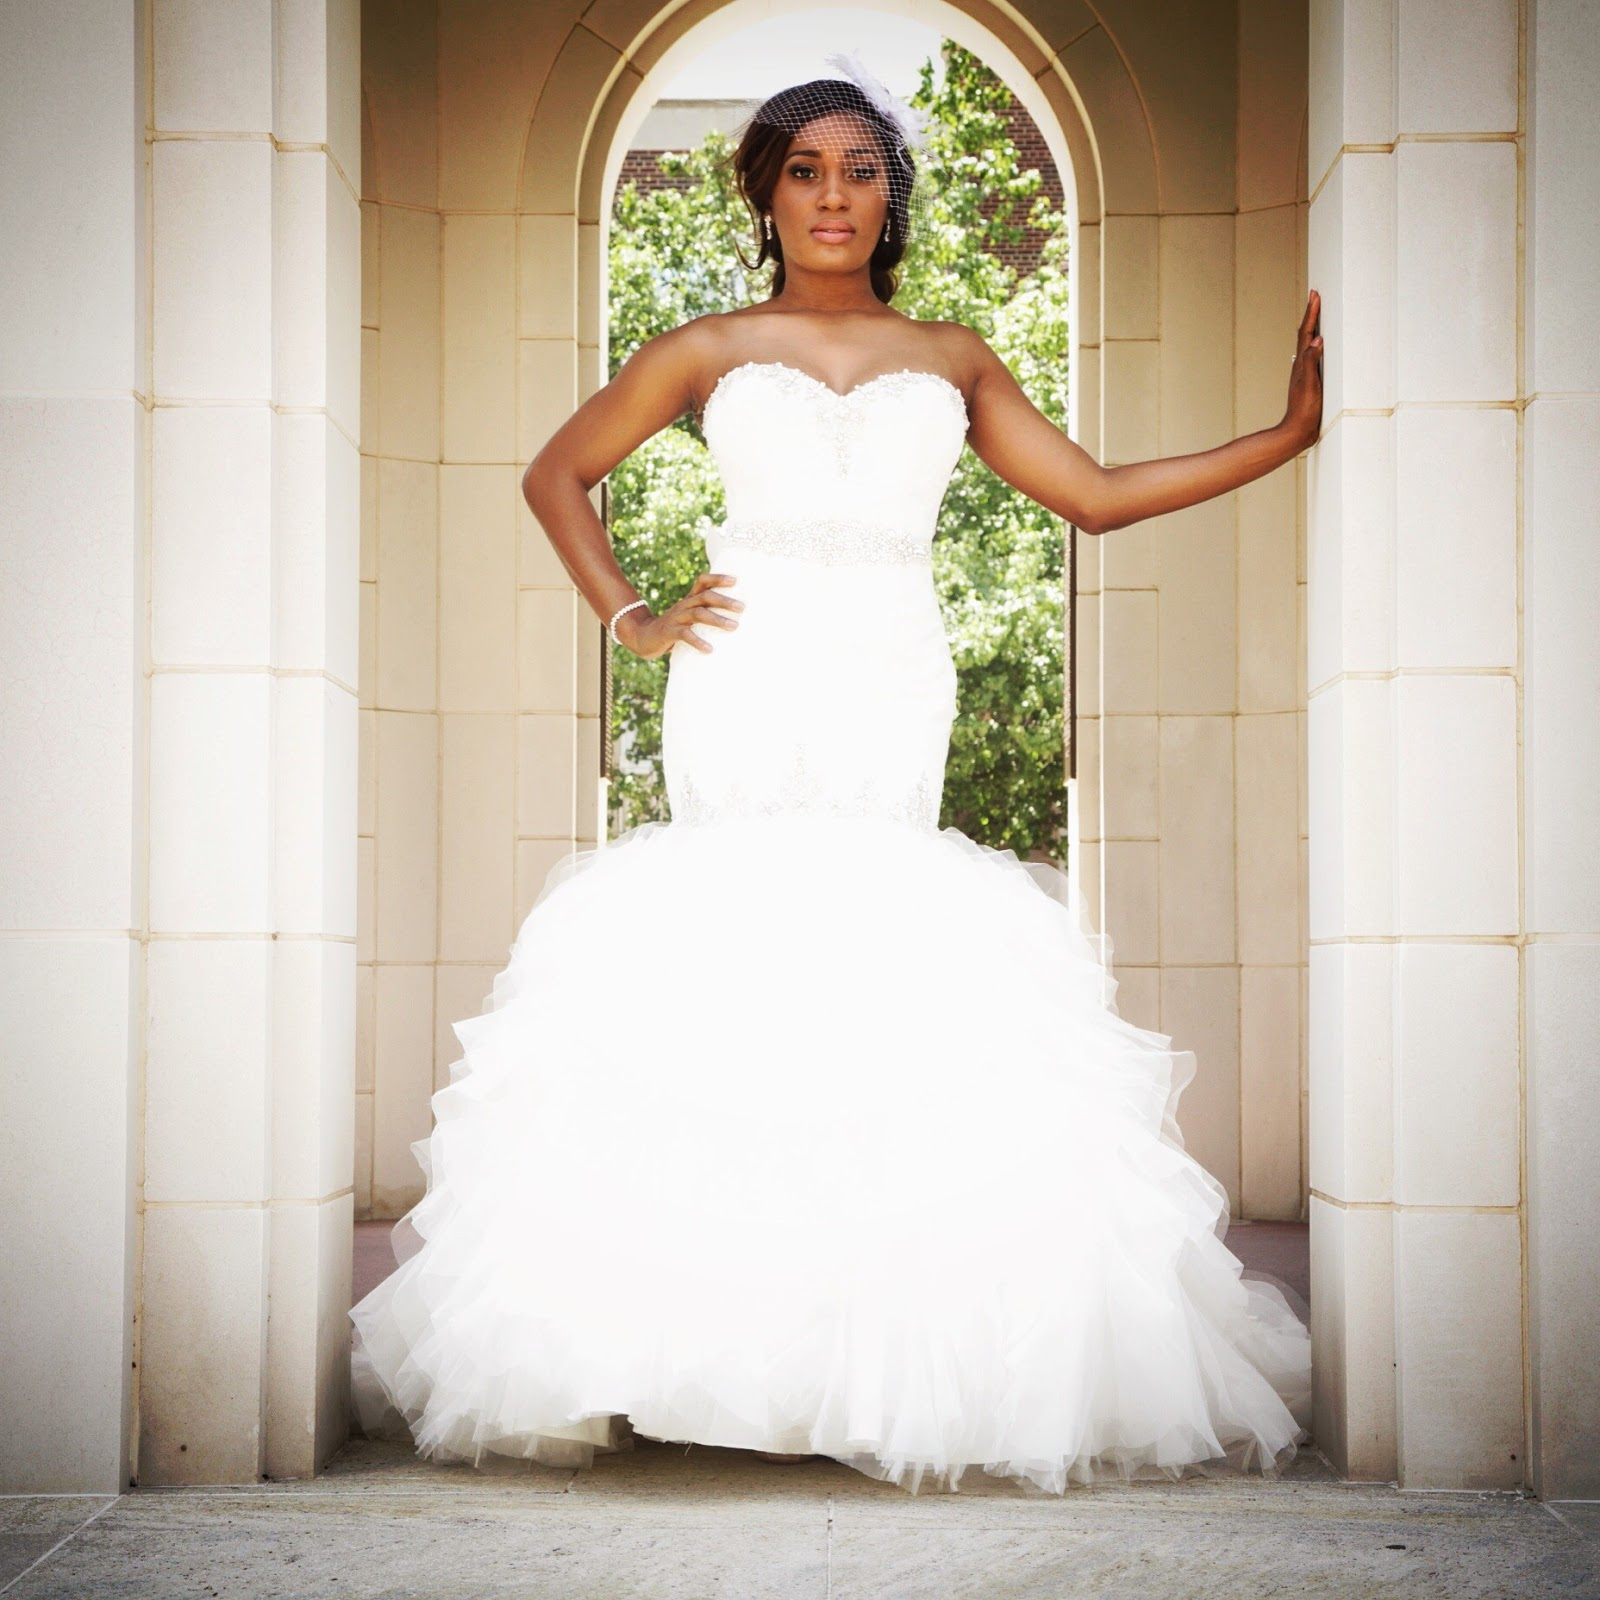 Fly Me To The Moon: Real Wedding: LuLu's Bride Is Stunning